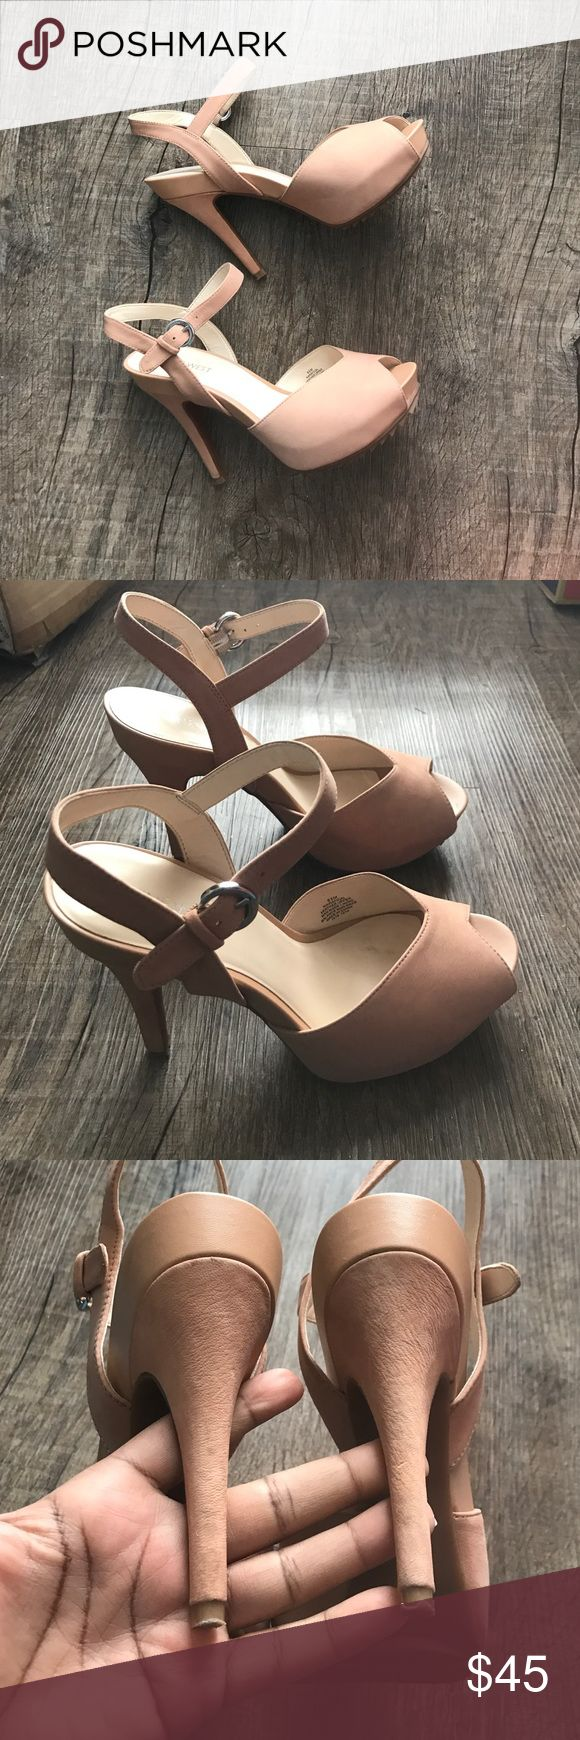 Nine West Nude Platform Slingbacks Pre-Loved and great condition. 4 inch heels. Some wear but not noticeable when wearing and great to dress up or down. Nine West Shoes Heels